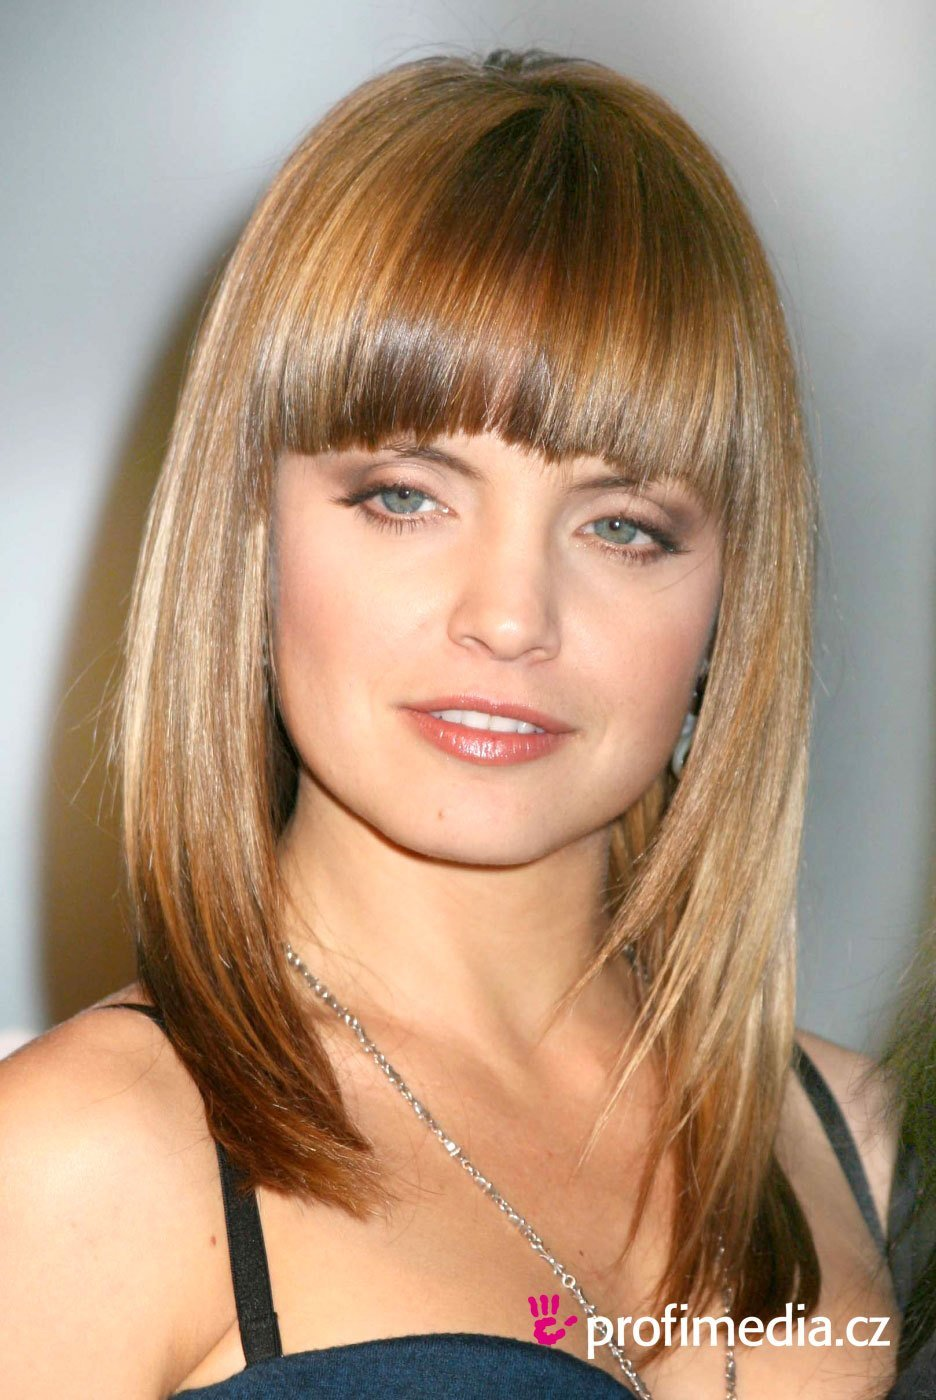 The Best Mena Suvari Hairstyle Easyhairstyler Pictures